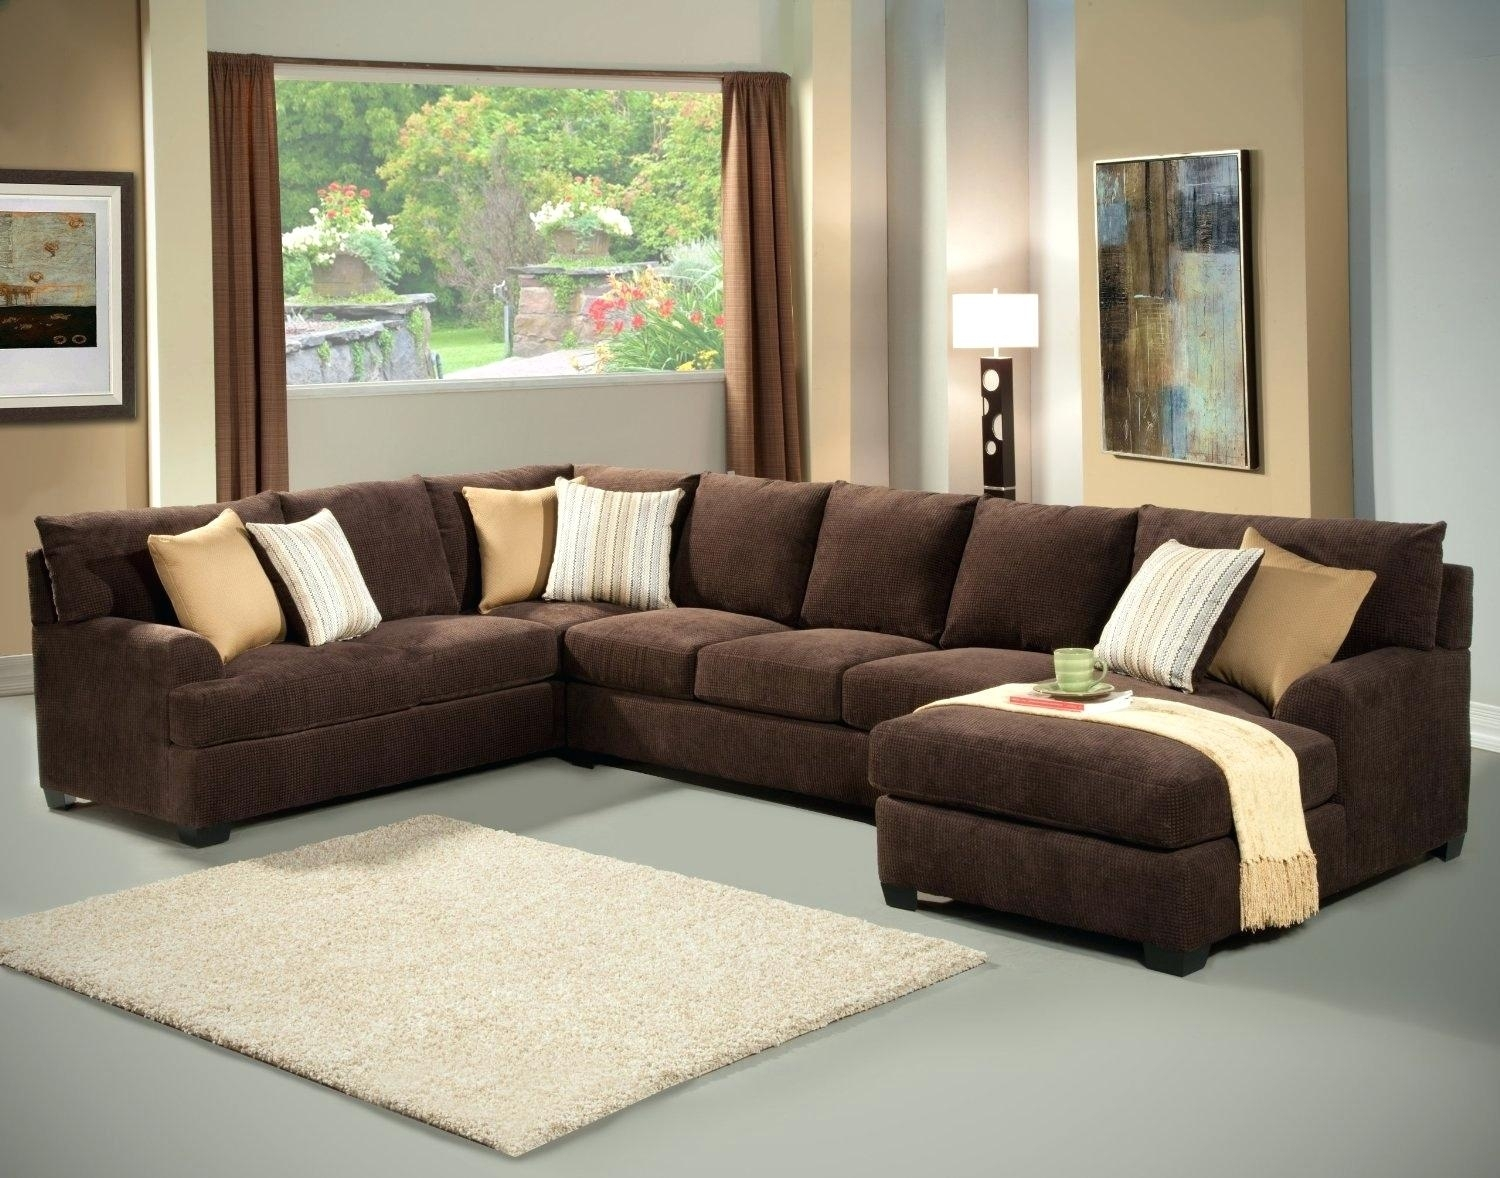 Chaise : Angled Chaise Sofa Sectional Canada Angled Chaise Sofa Intended For Angled Chaise Sofas (View 10 of 10)